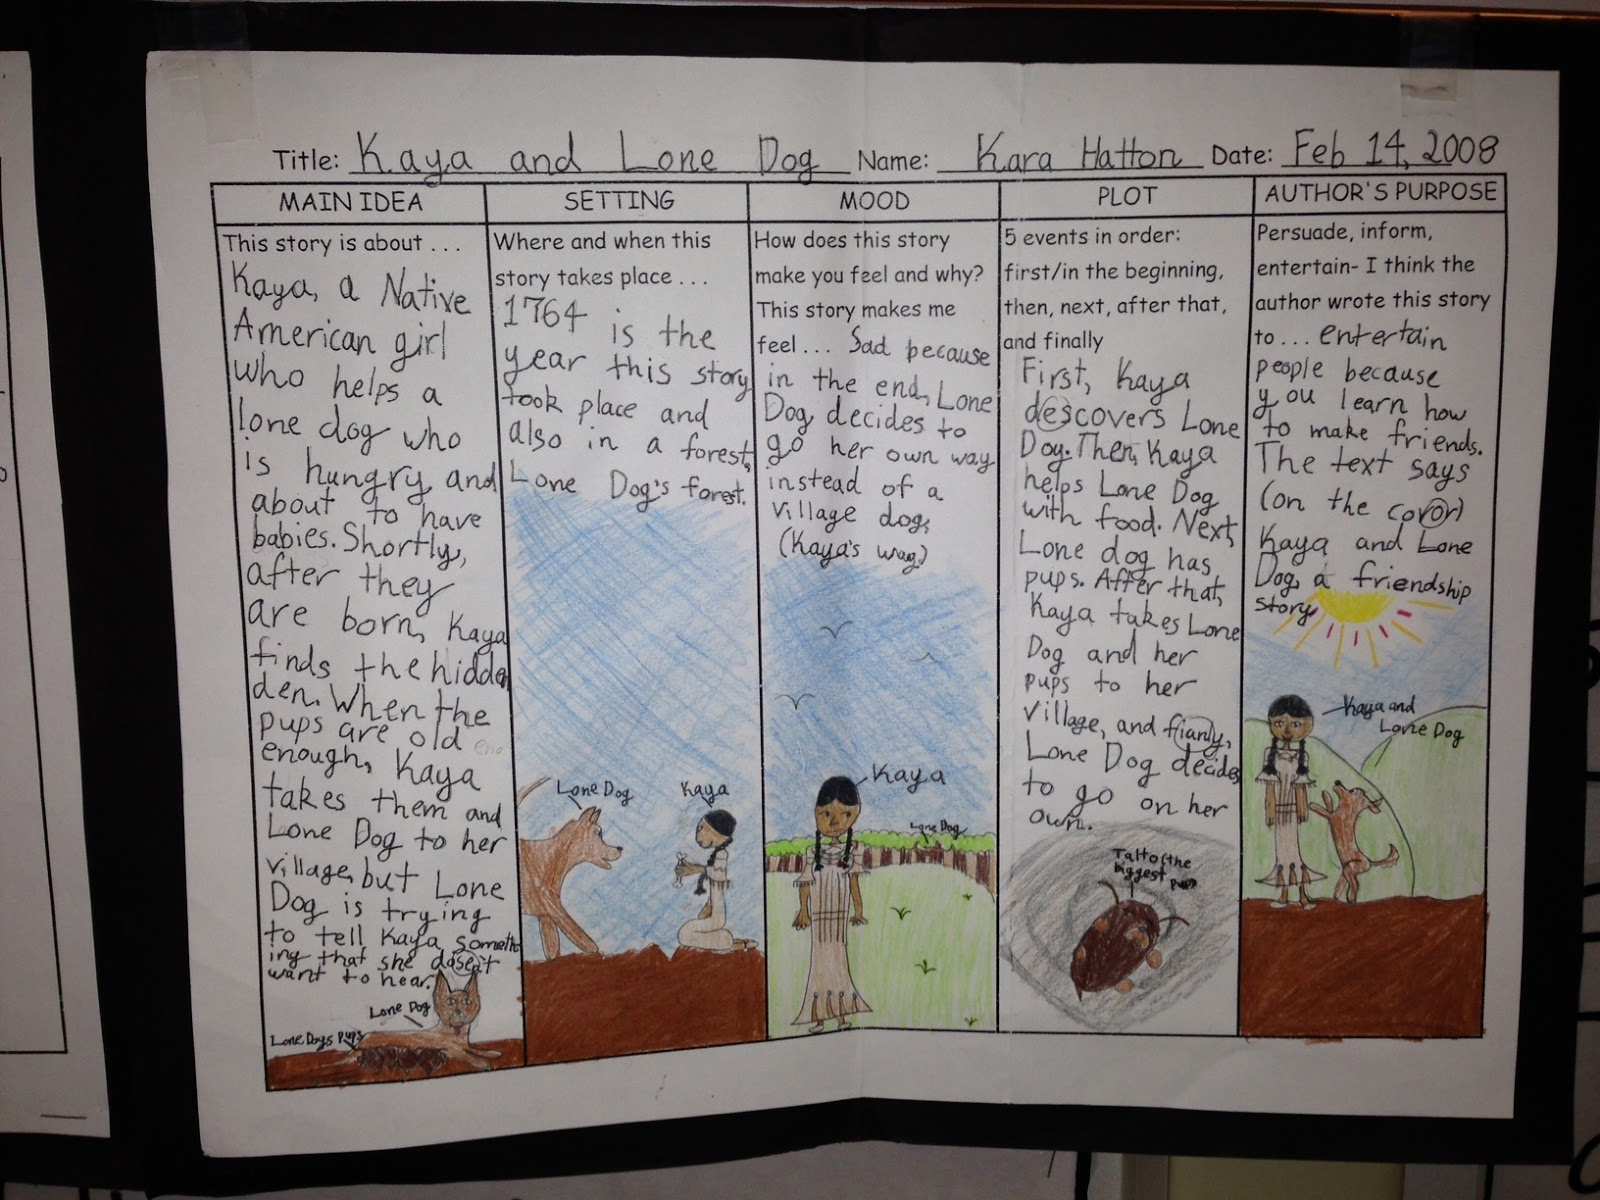 Check Out These Three Winter Book Report Samples From Previous Years!